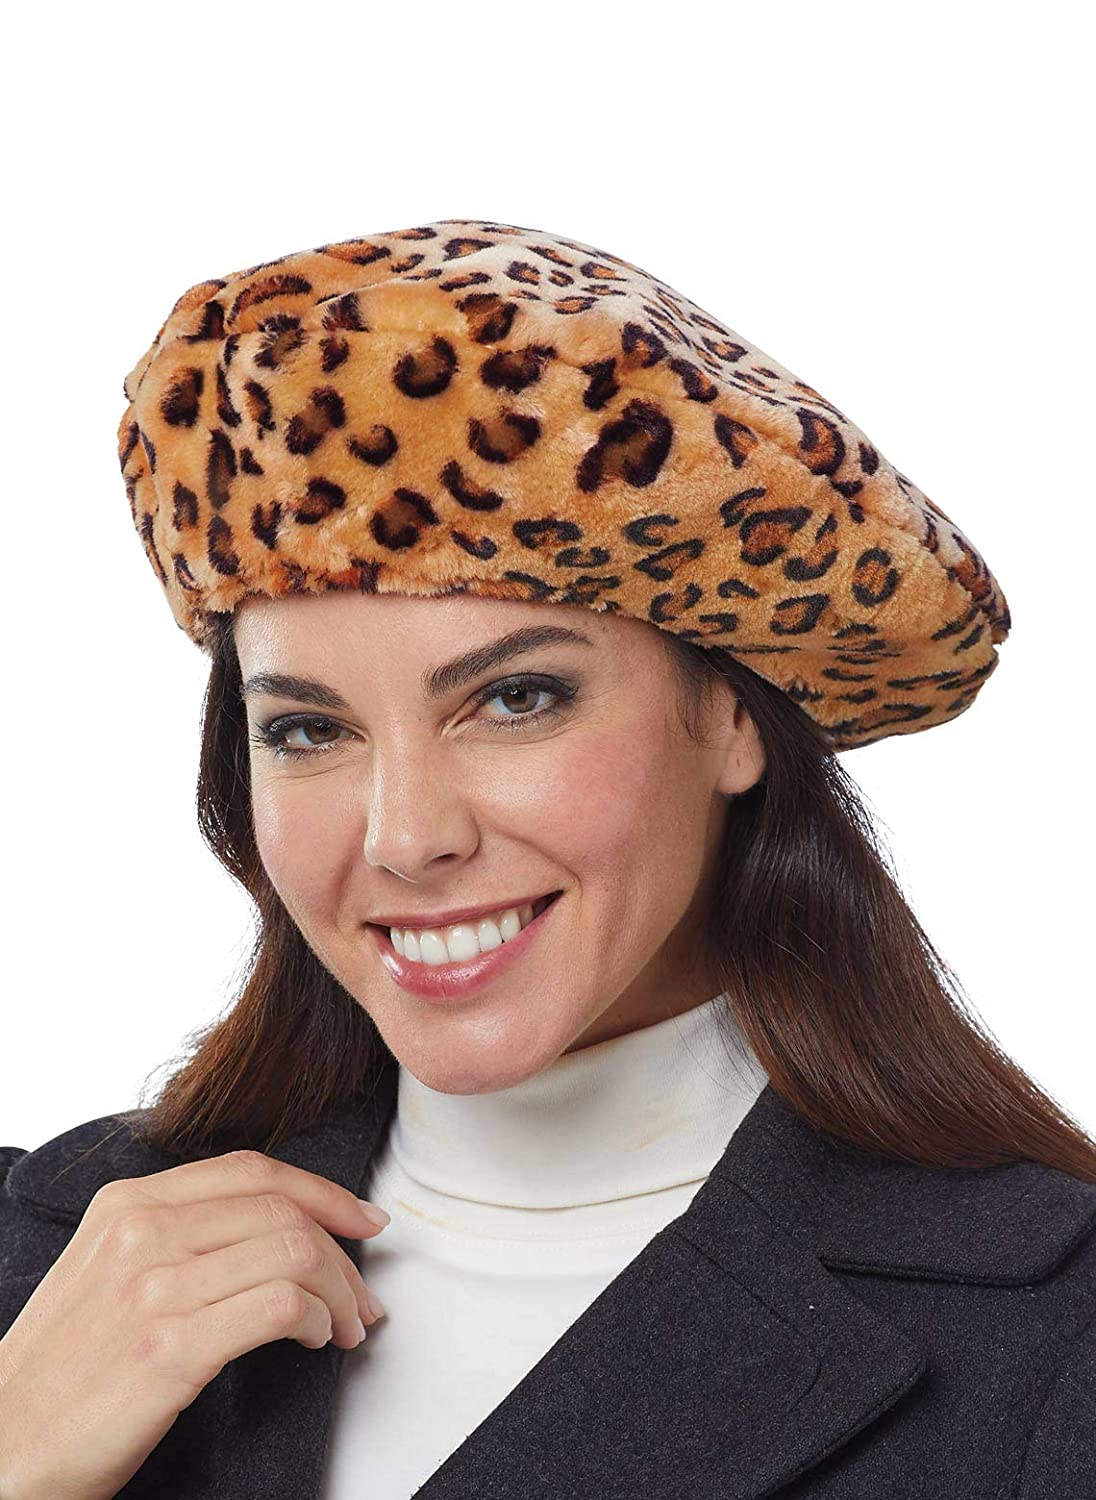 4beab025332a Carol Wright Gifts Ladies' Faux Fur Beret, Black at Amazon Women's Clothing  store: